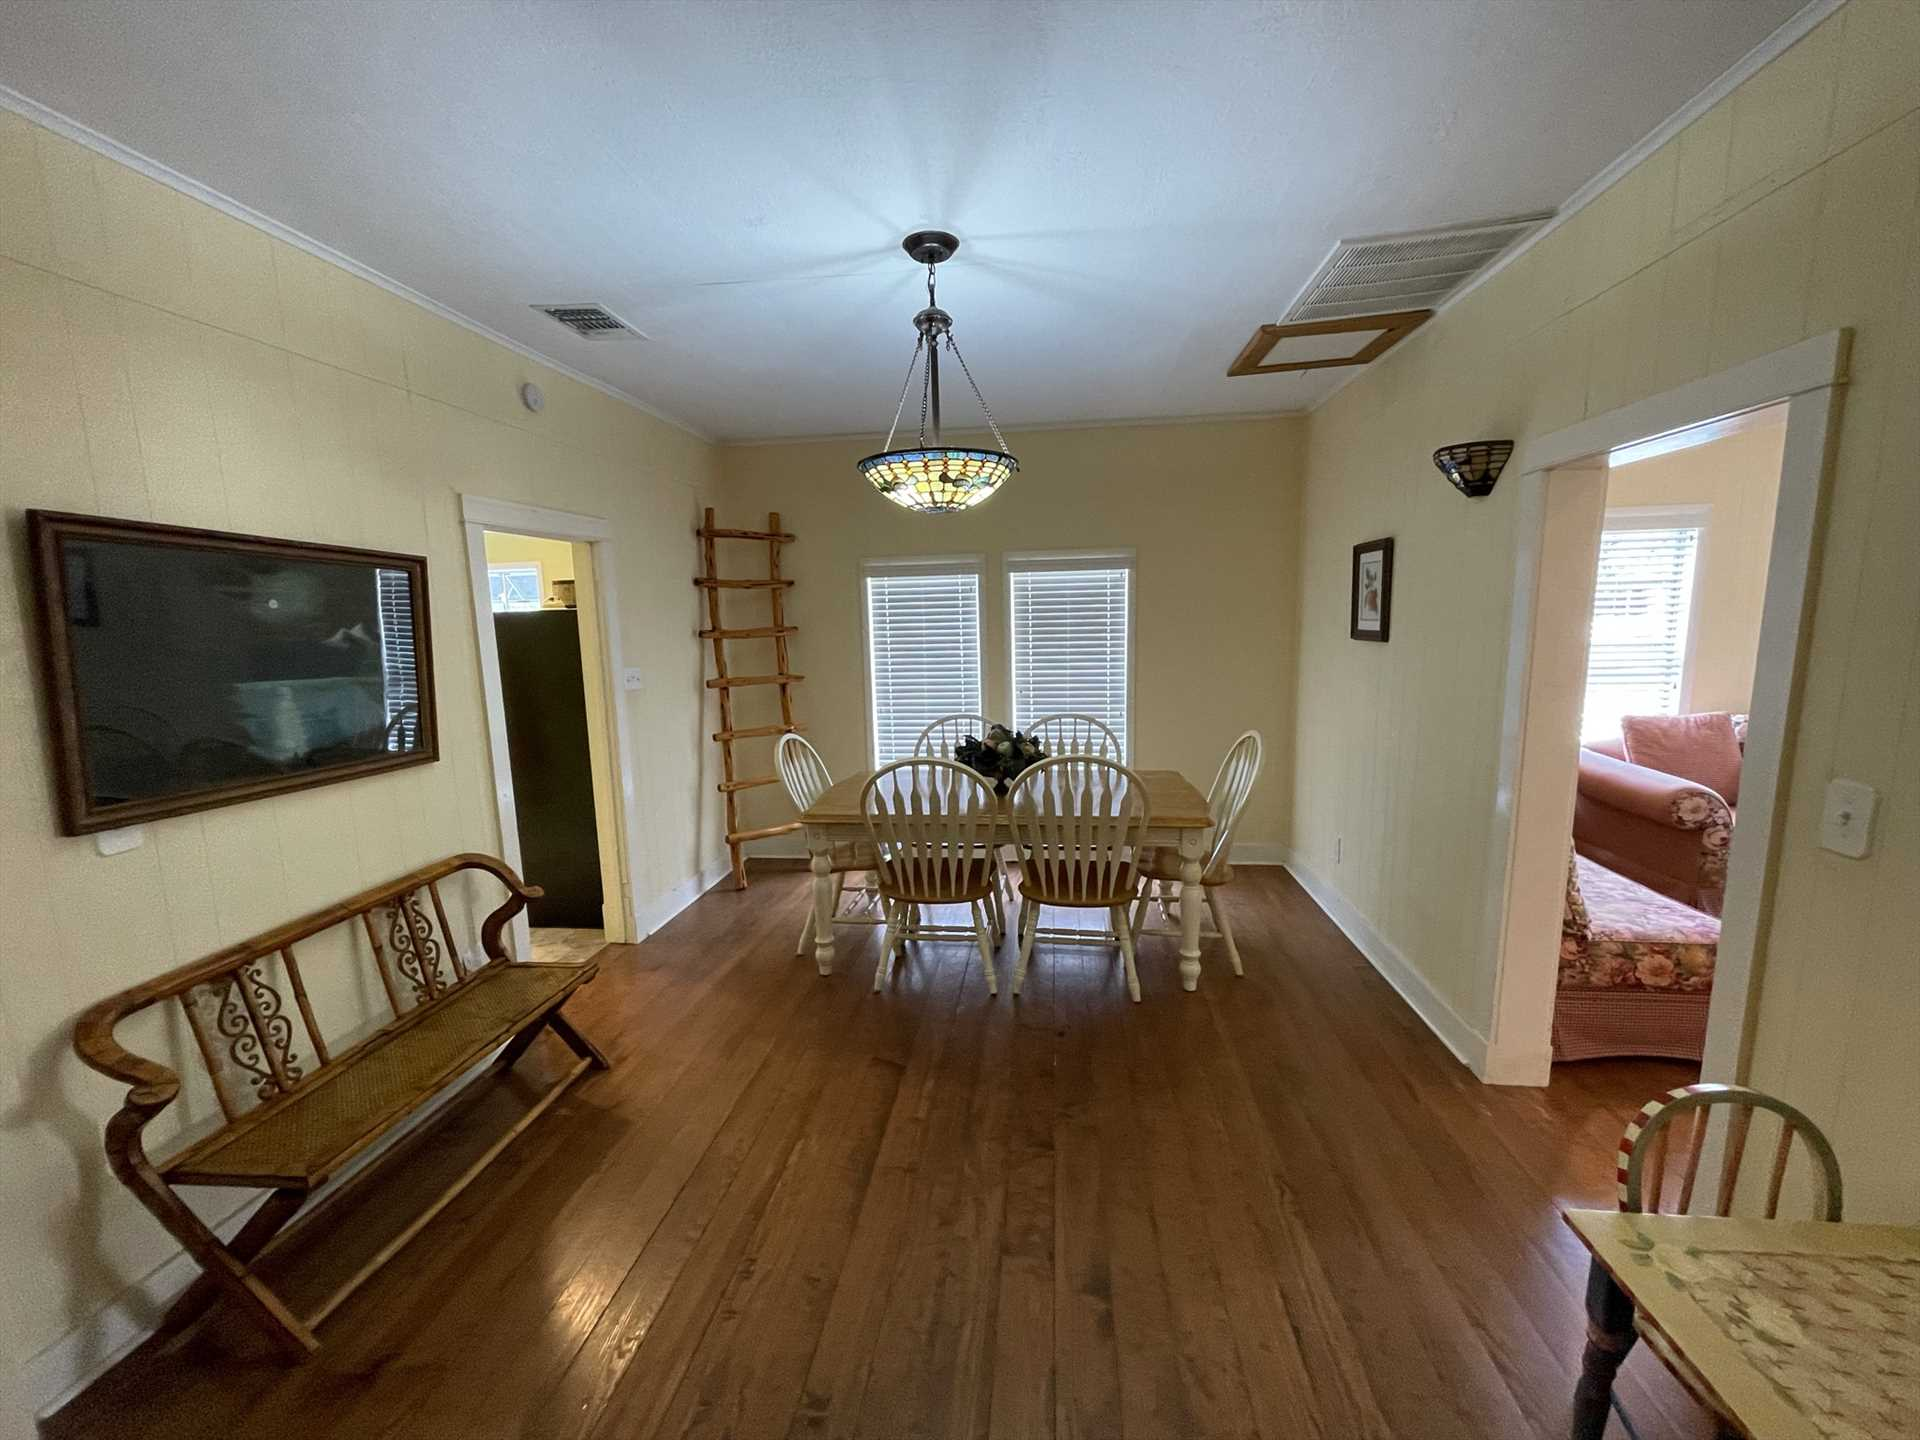 Enjoy delicious meals, and have some game night fun, around the charming and roomy dining room table!